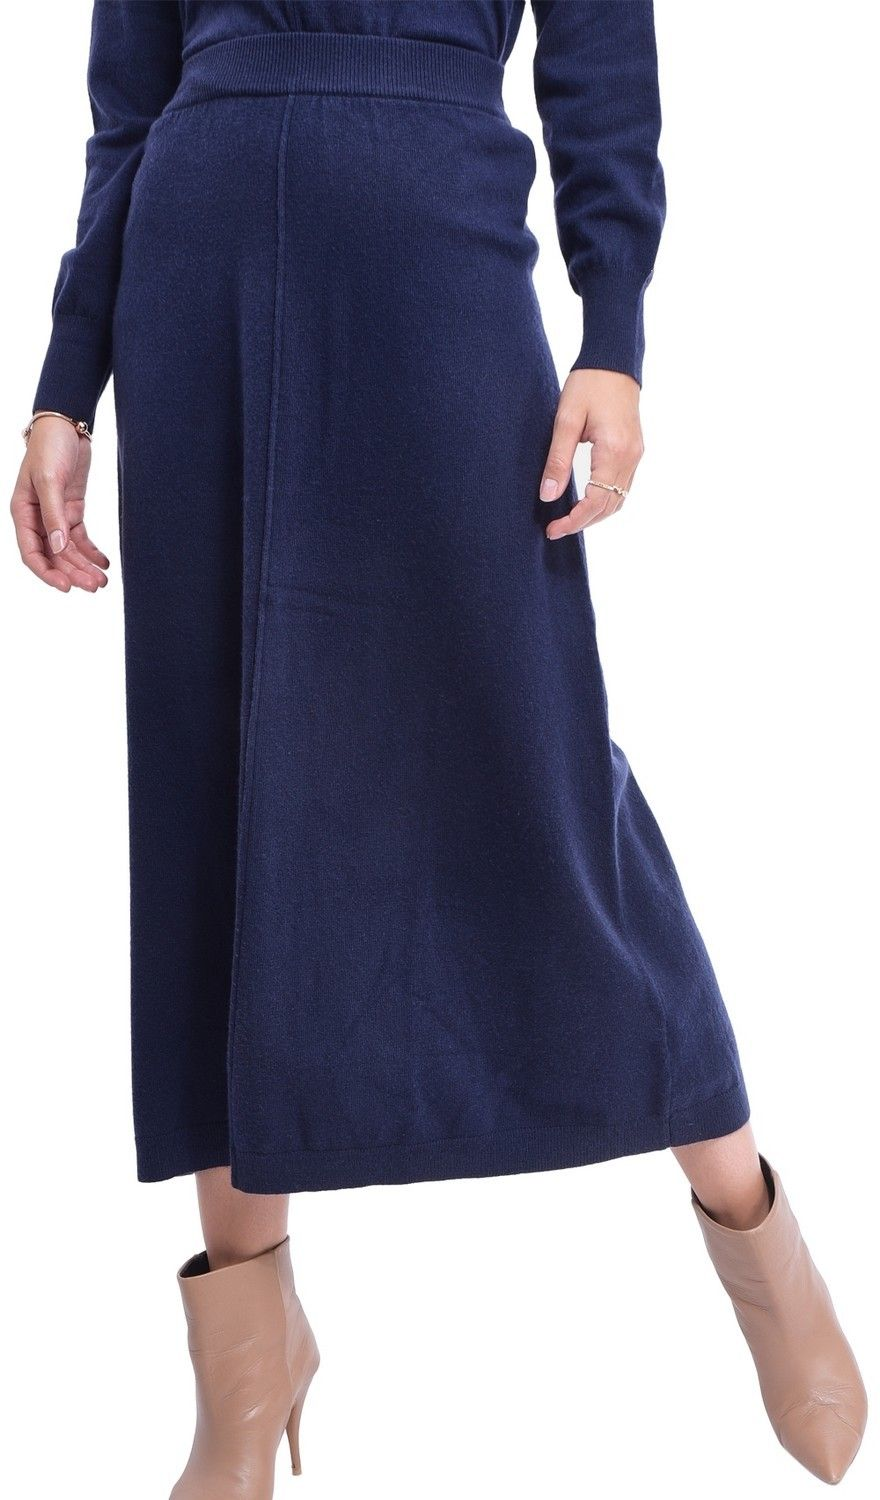 Assuili Ribbed Midaxi Skirt in Navy